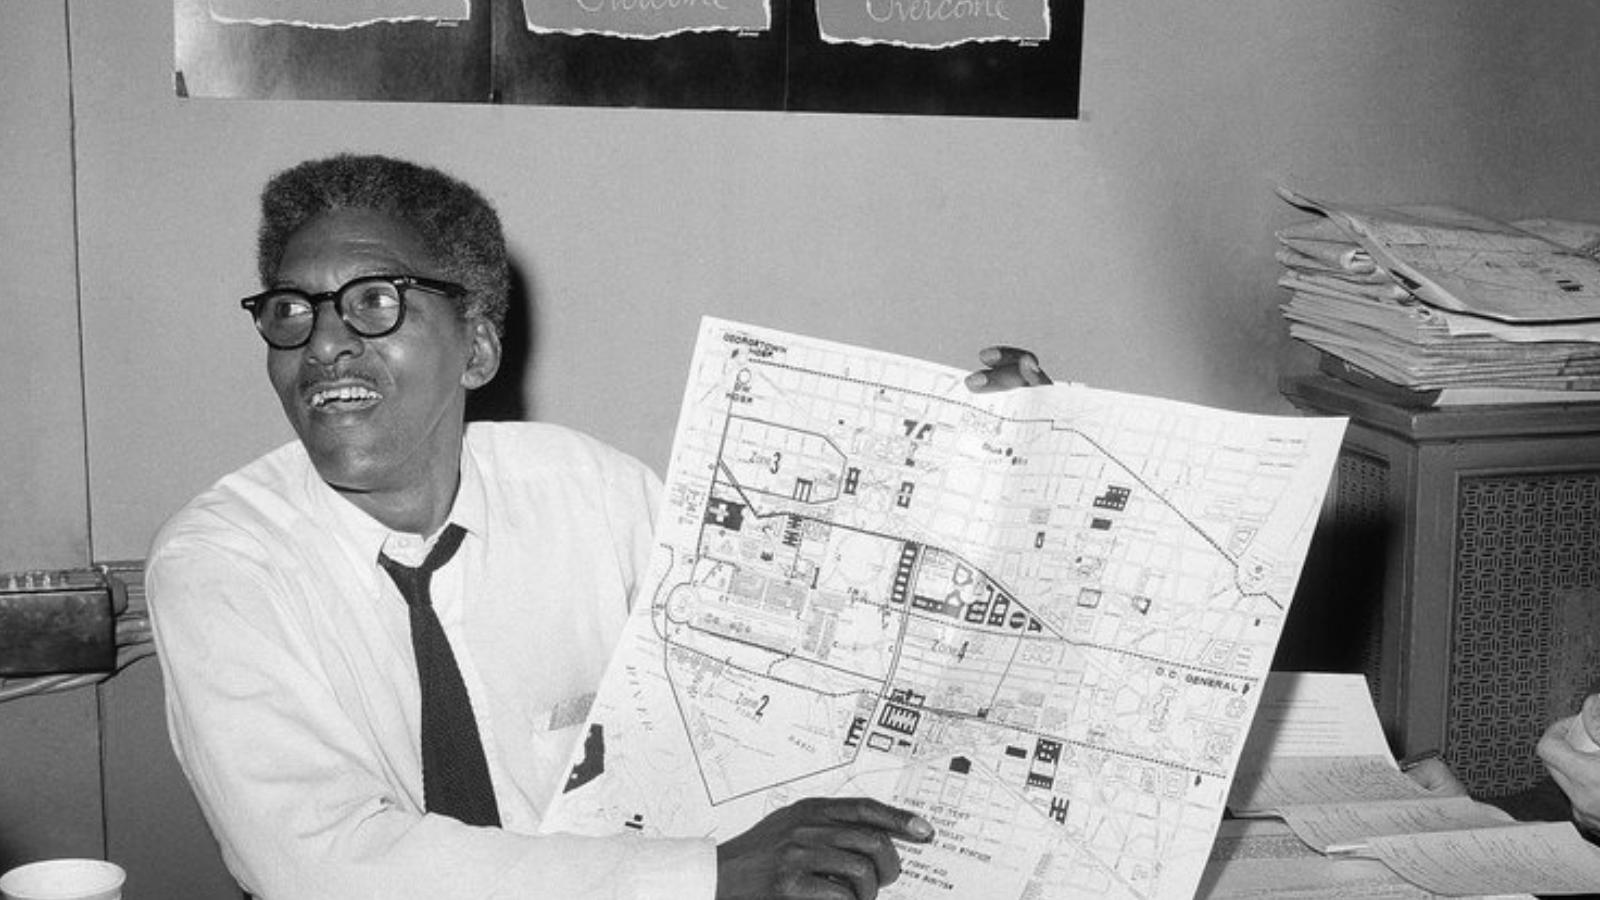 Bayard Rustin holding a map and smiling. He knows some fudging magic is going to happen.